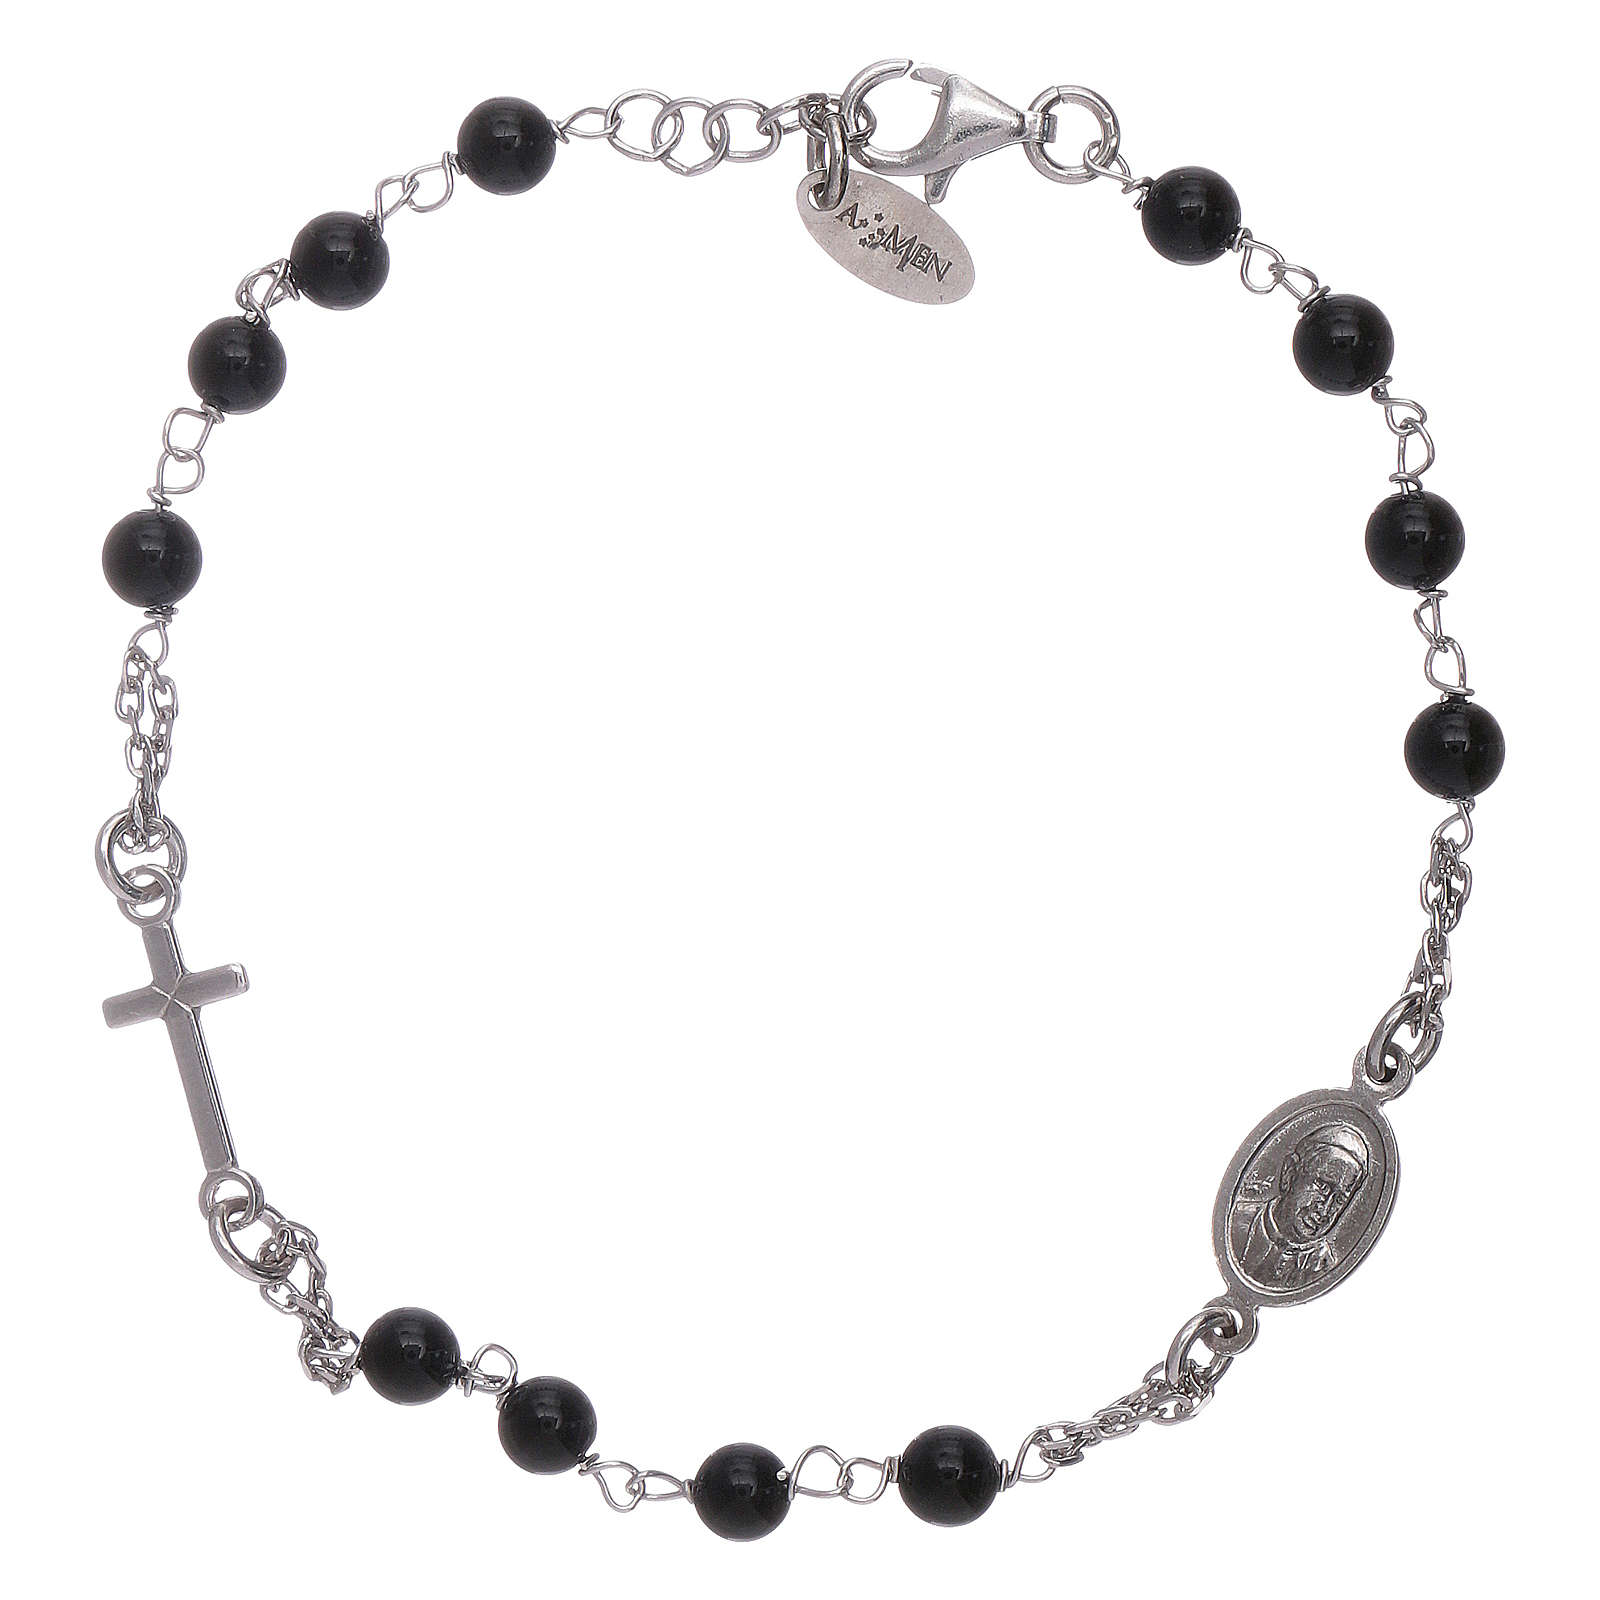 AMEN 925 sterling silver rosary bracelet with black agate beads 4